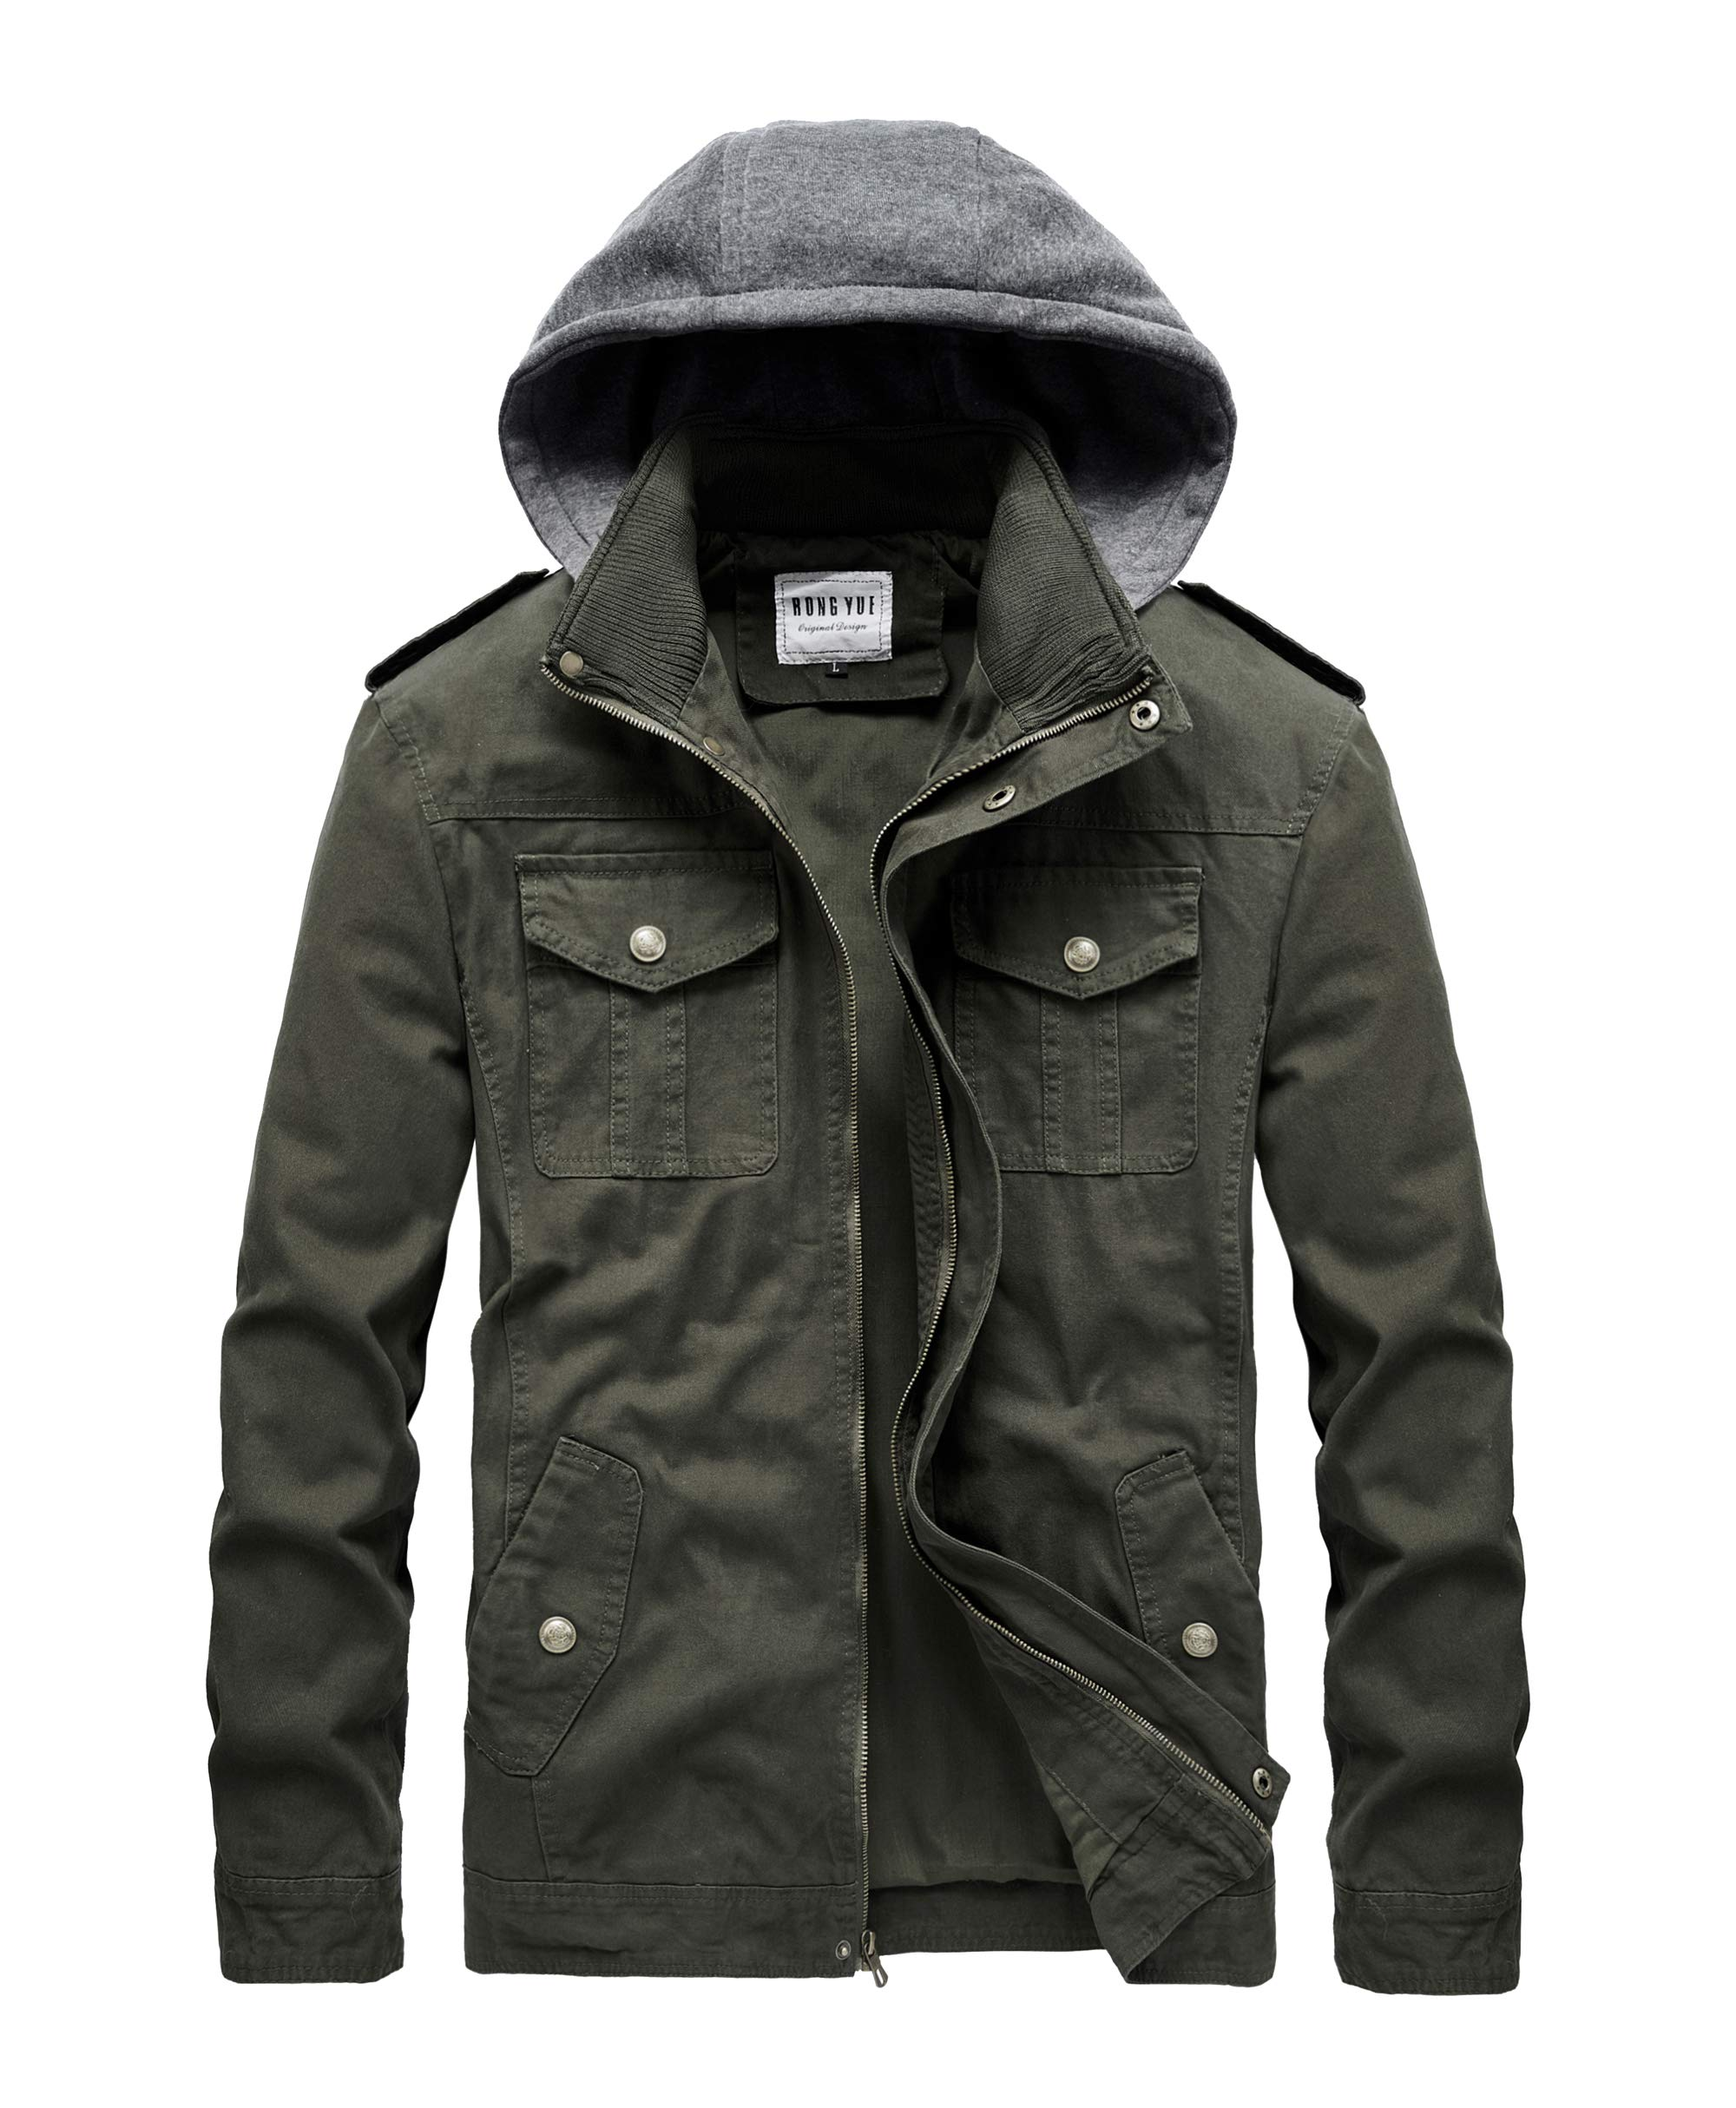 RongYue Men's Casual Cotton Military Jacket with Removable Hood Army Green by RongYue